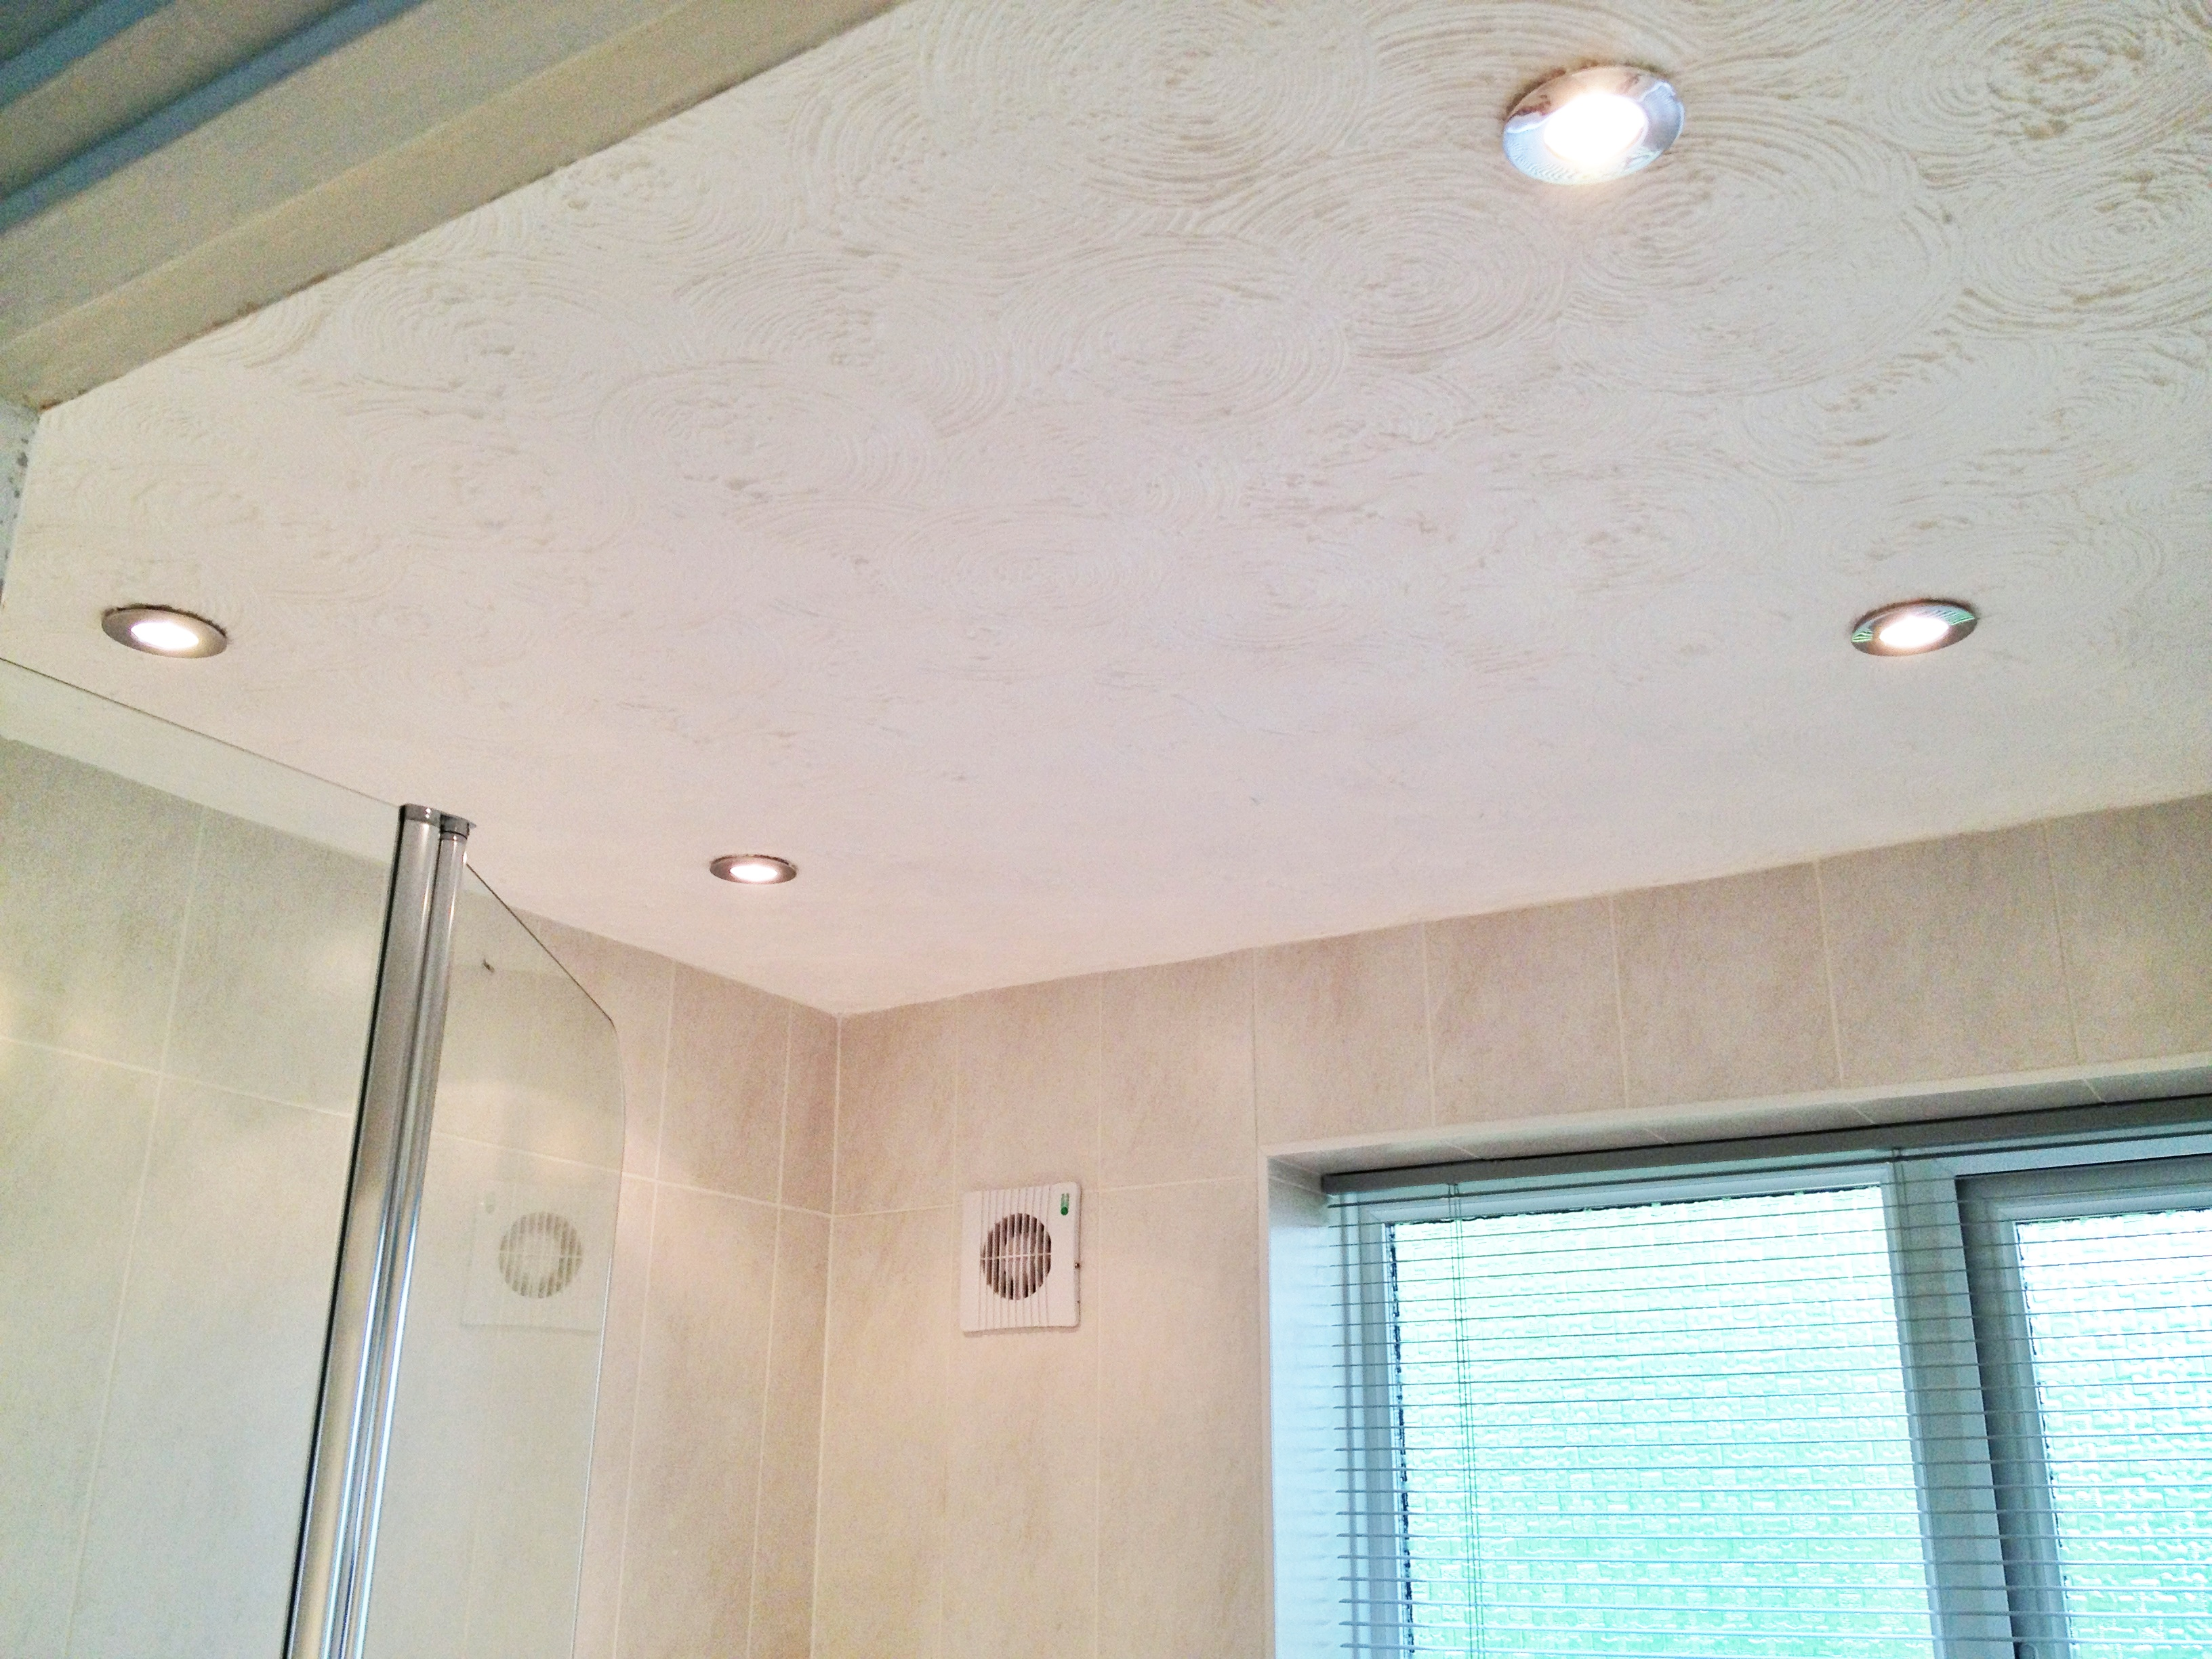 Badezimmer Einbaustrahler Bathroom Downlights 4 Thames Valley Electricians